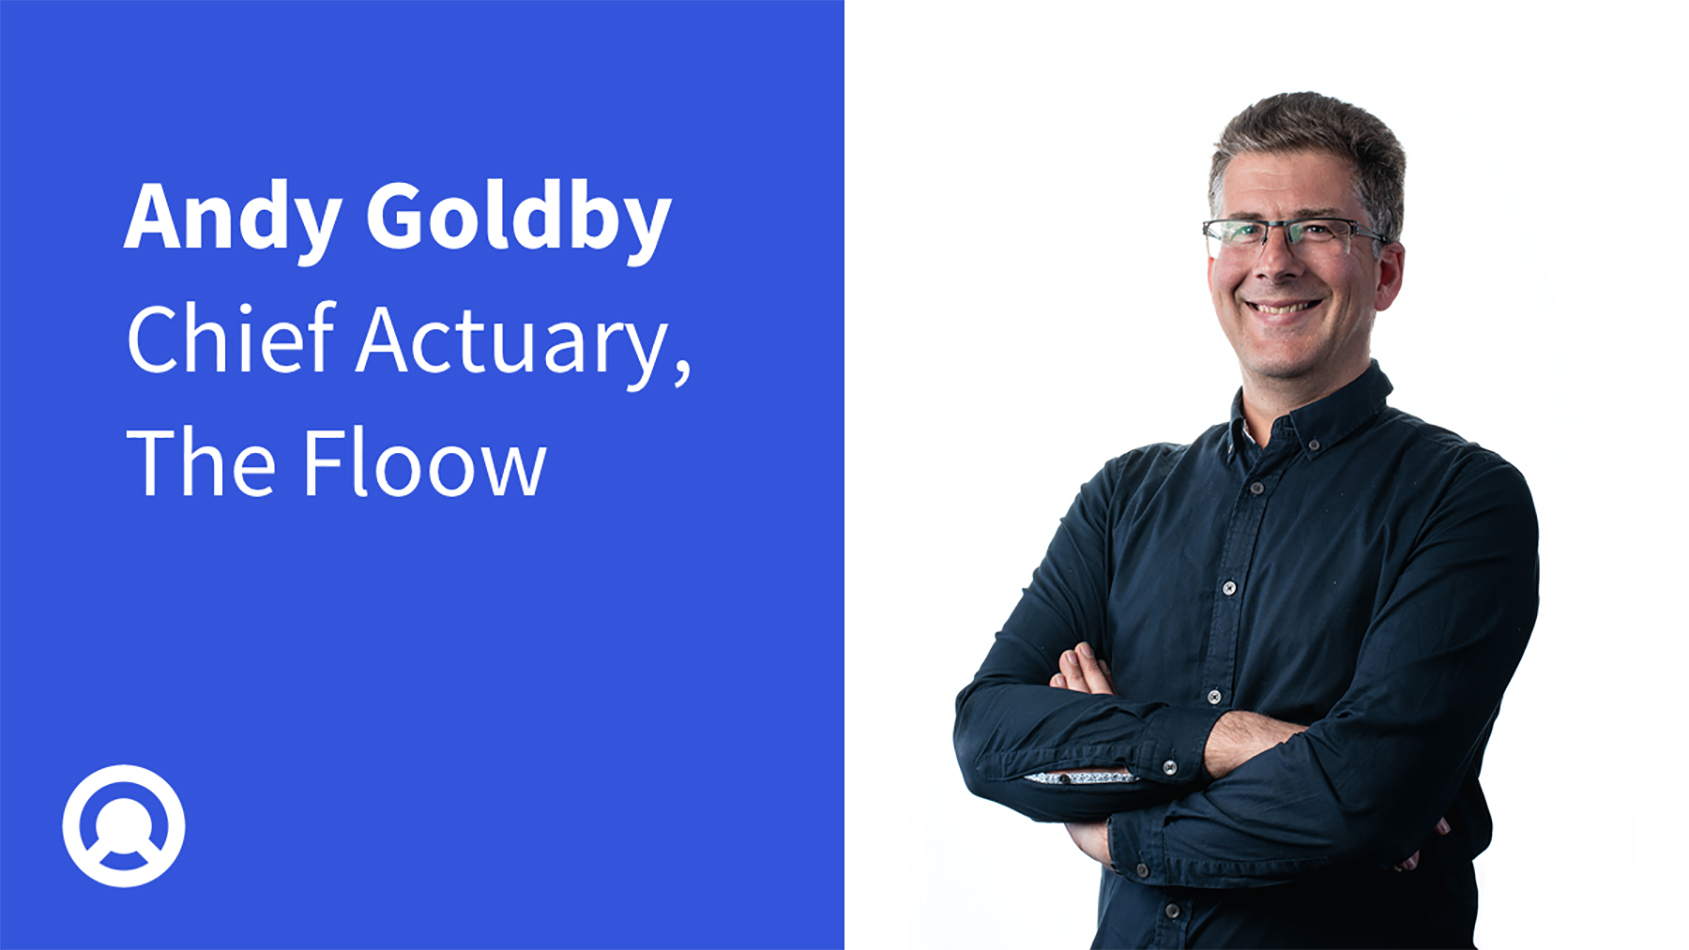 Andy Goldby, Chief Actuary, The Floow